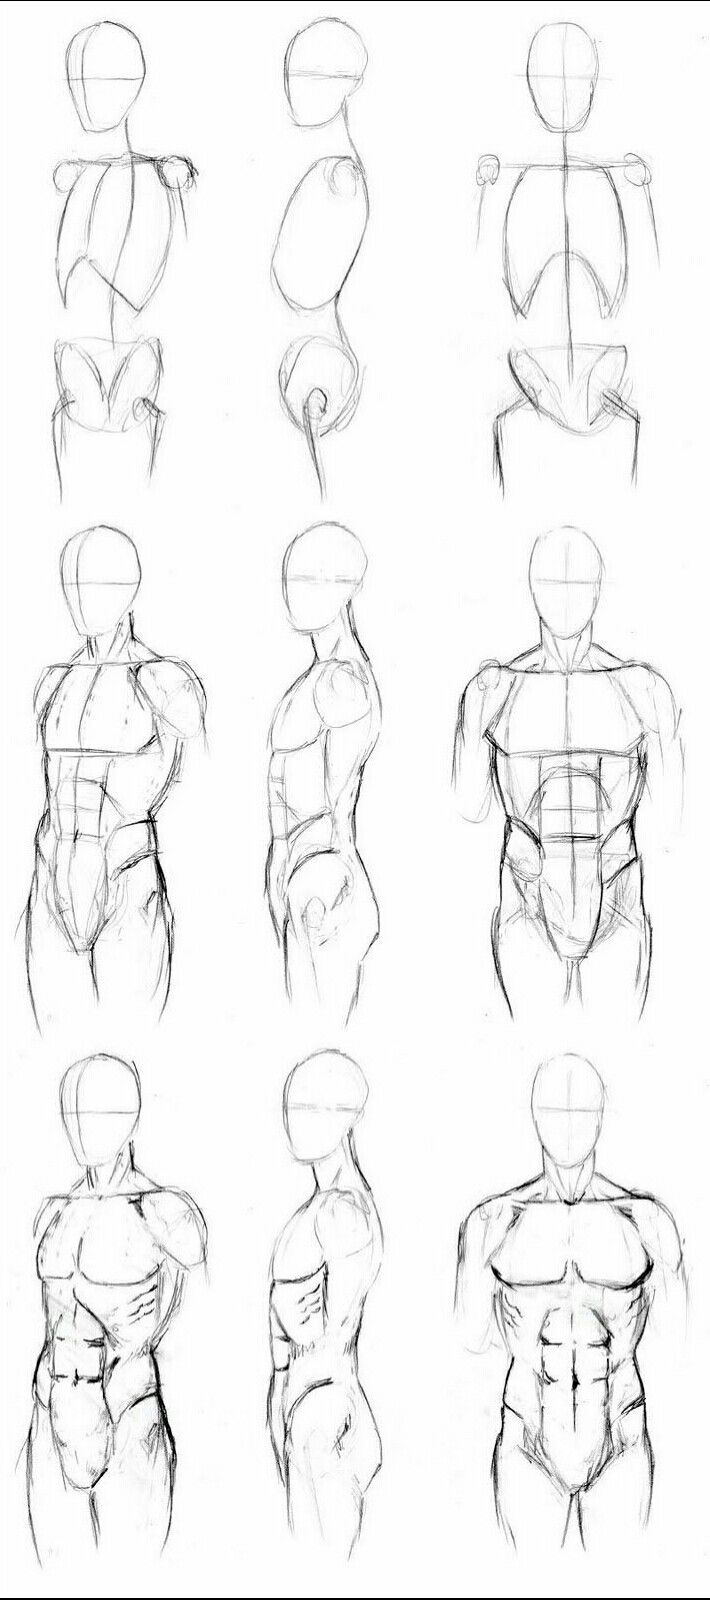 Pin von solar salamandar auf Male Bodies(references) | Pinterest ...